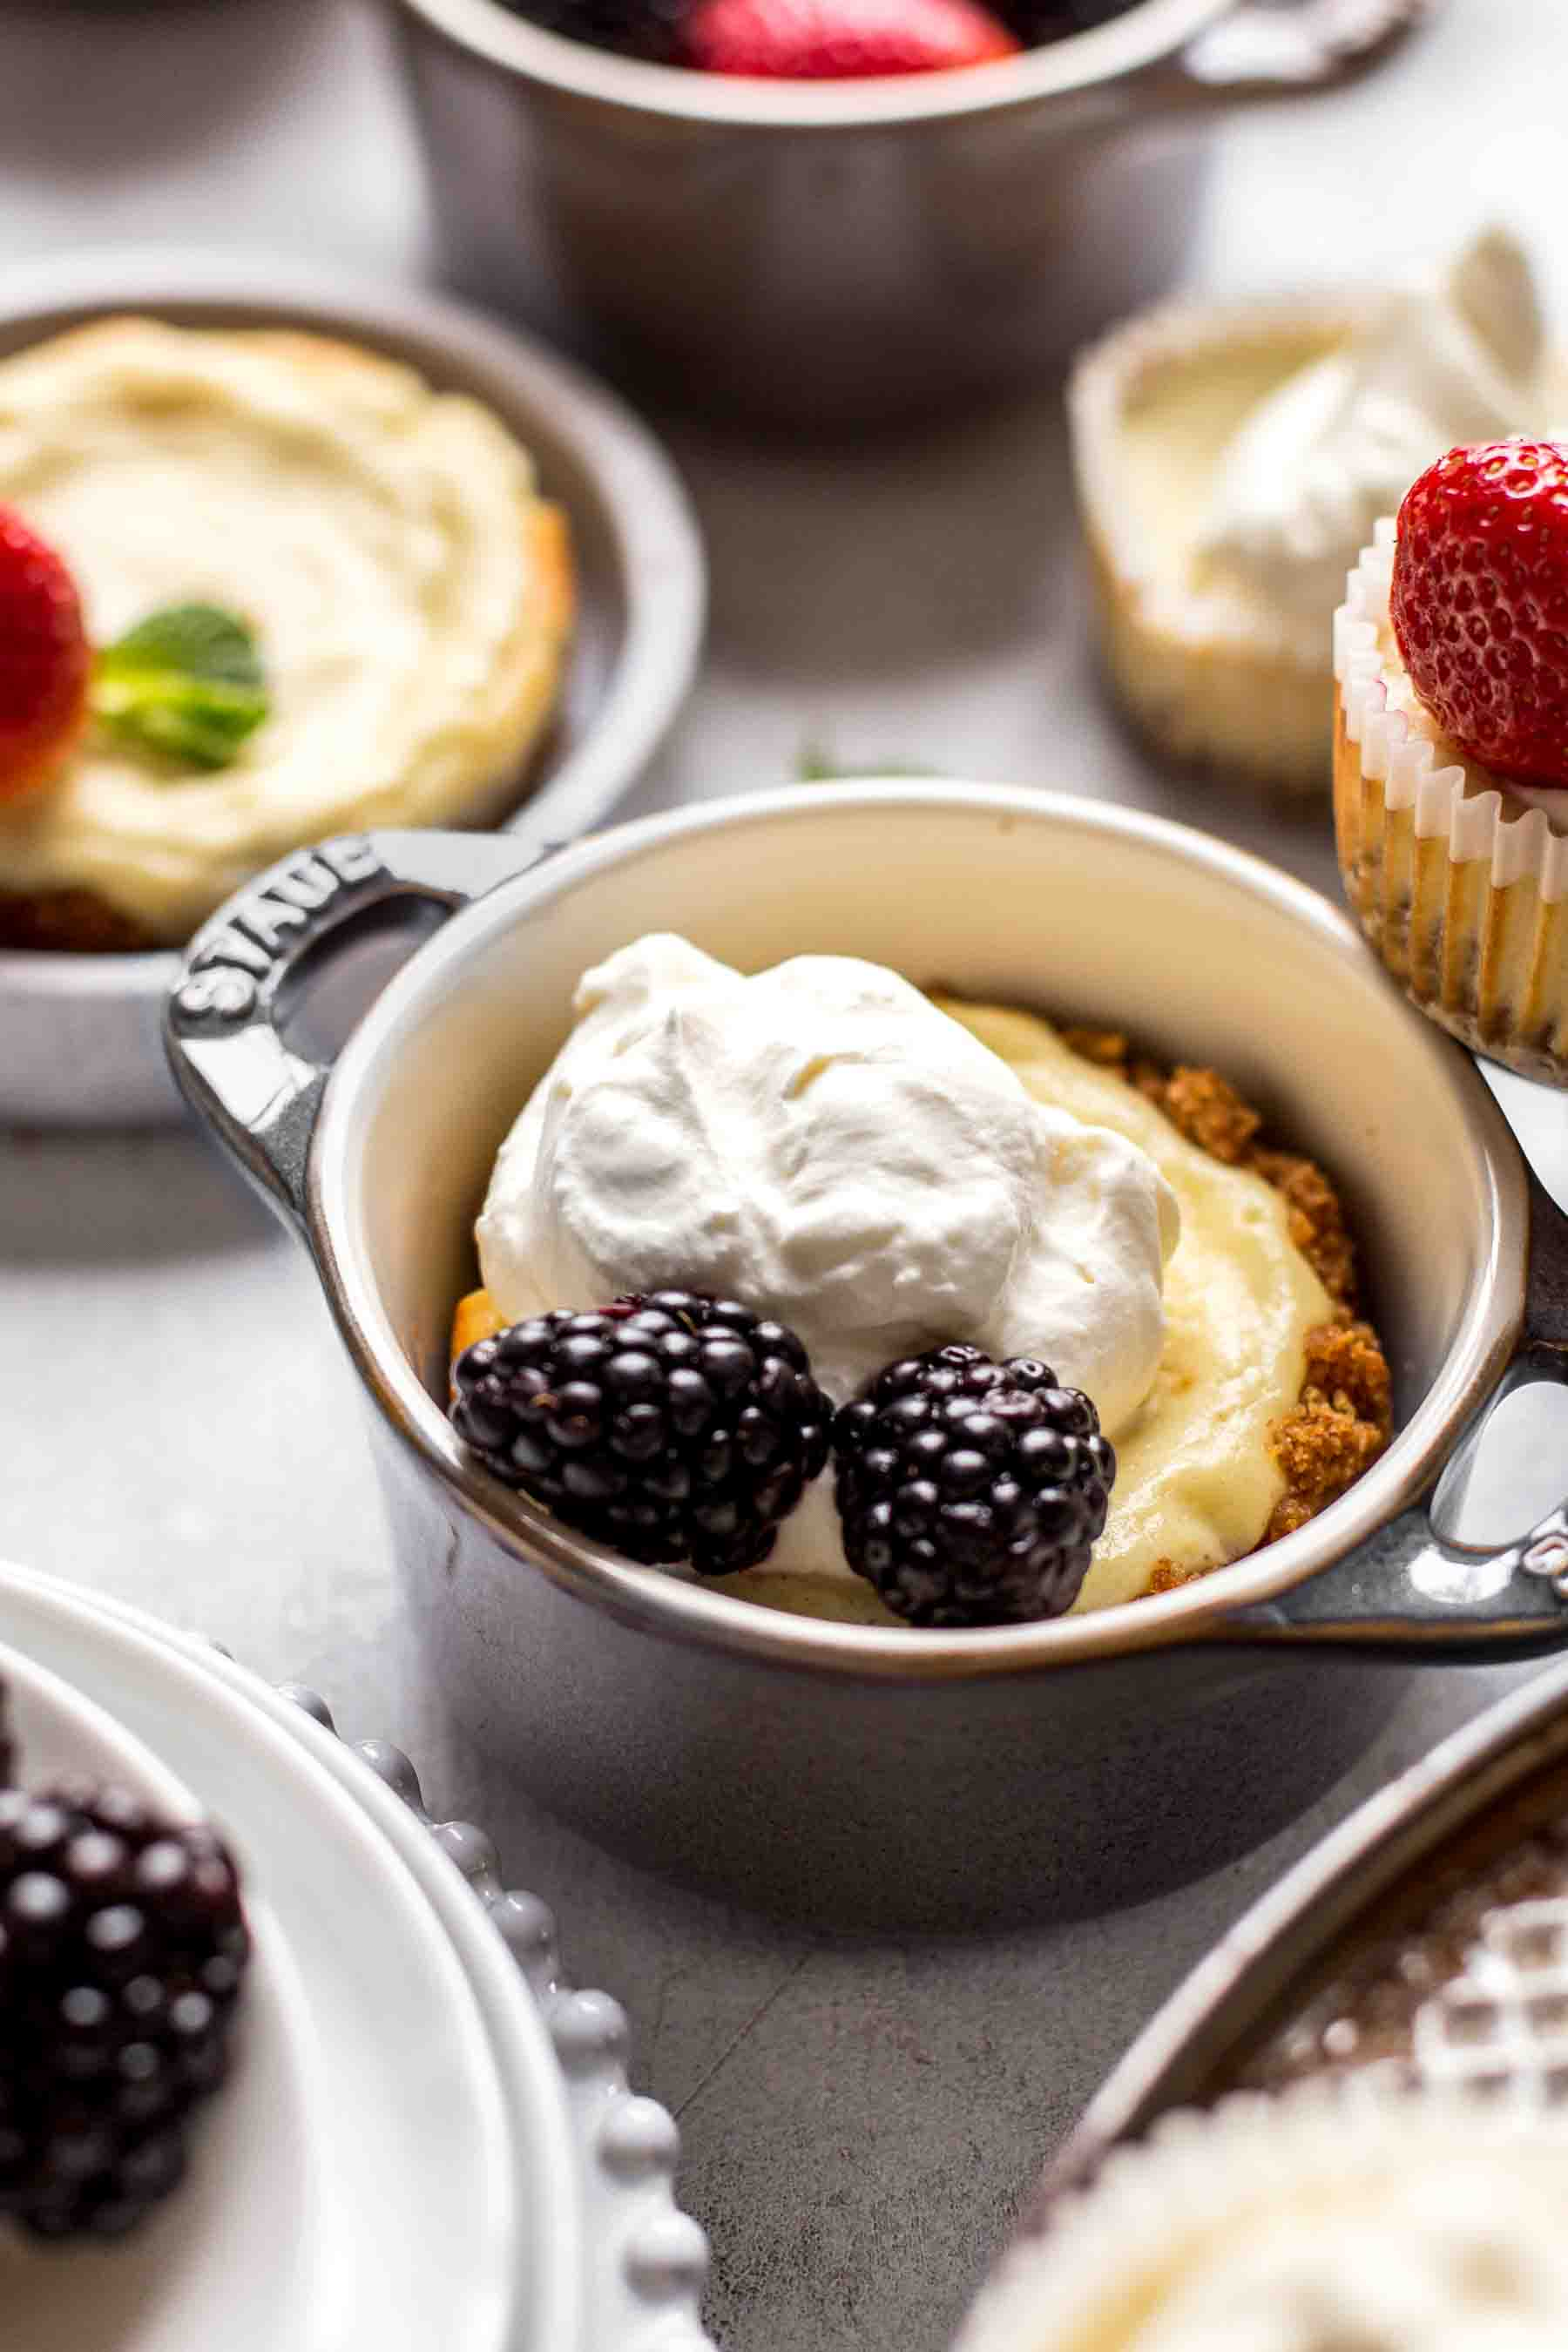 baked mini cheesecake with berries and whipping cream